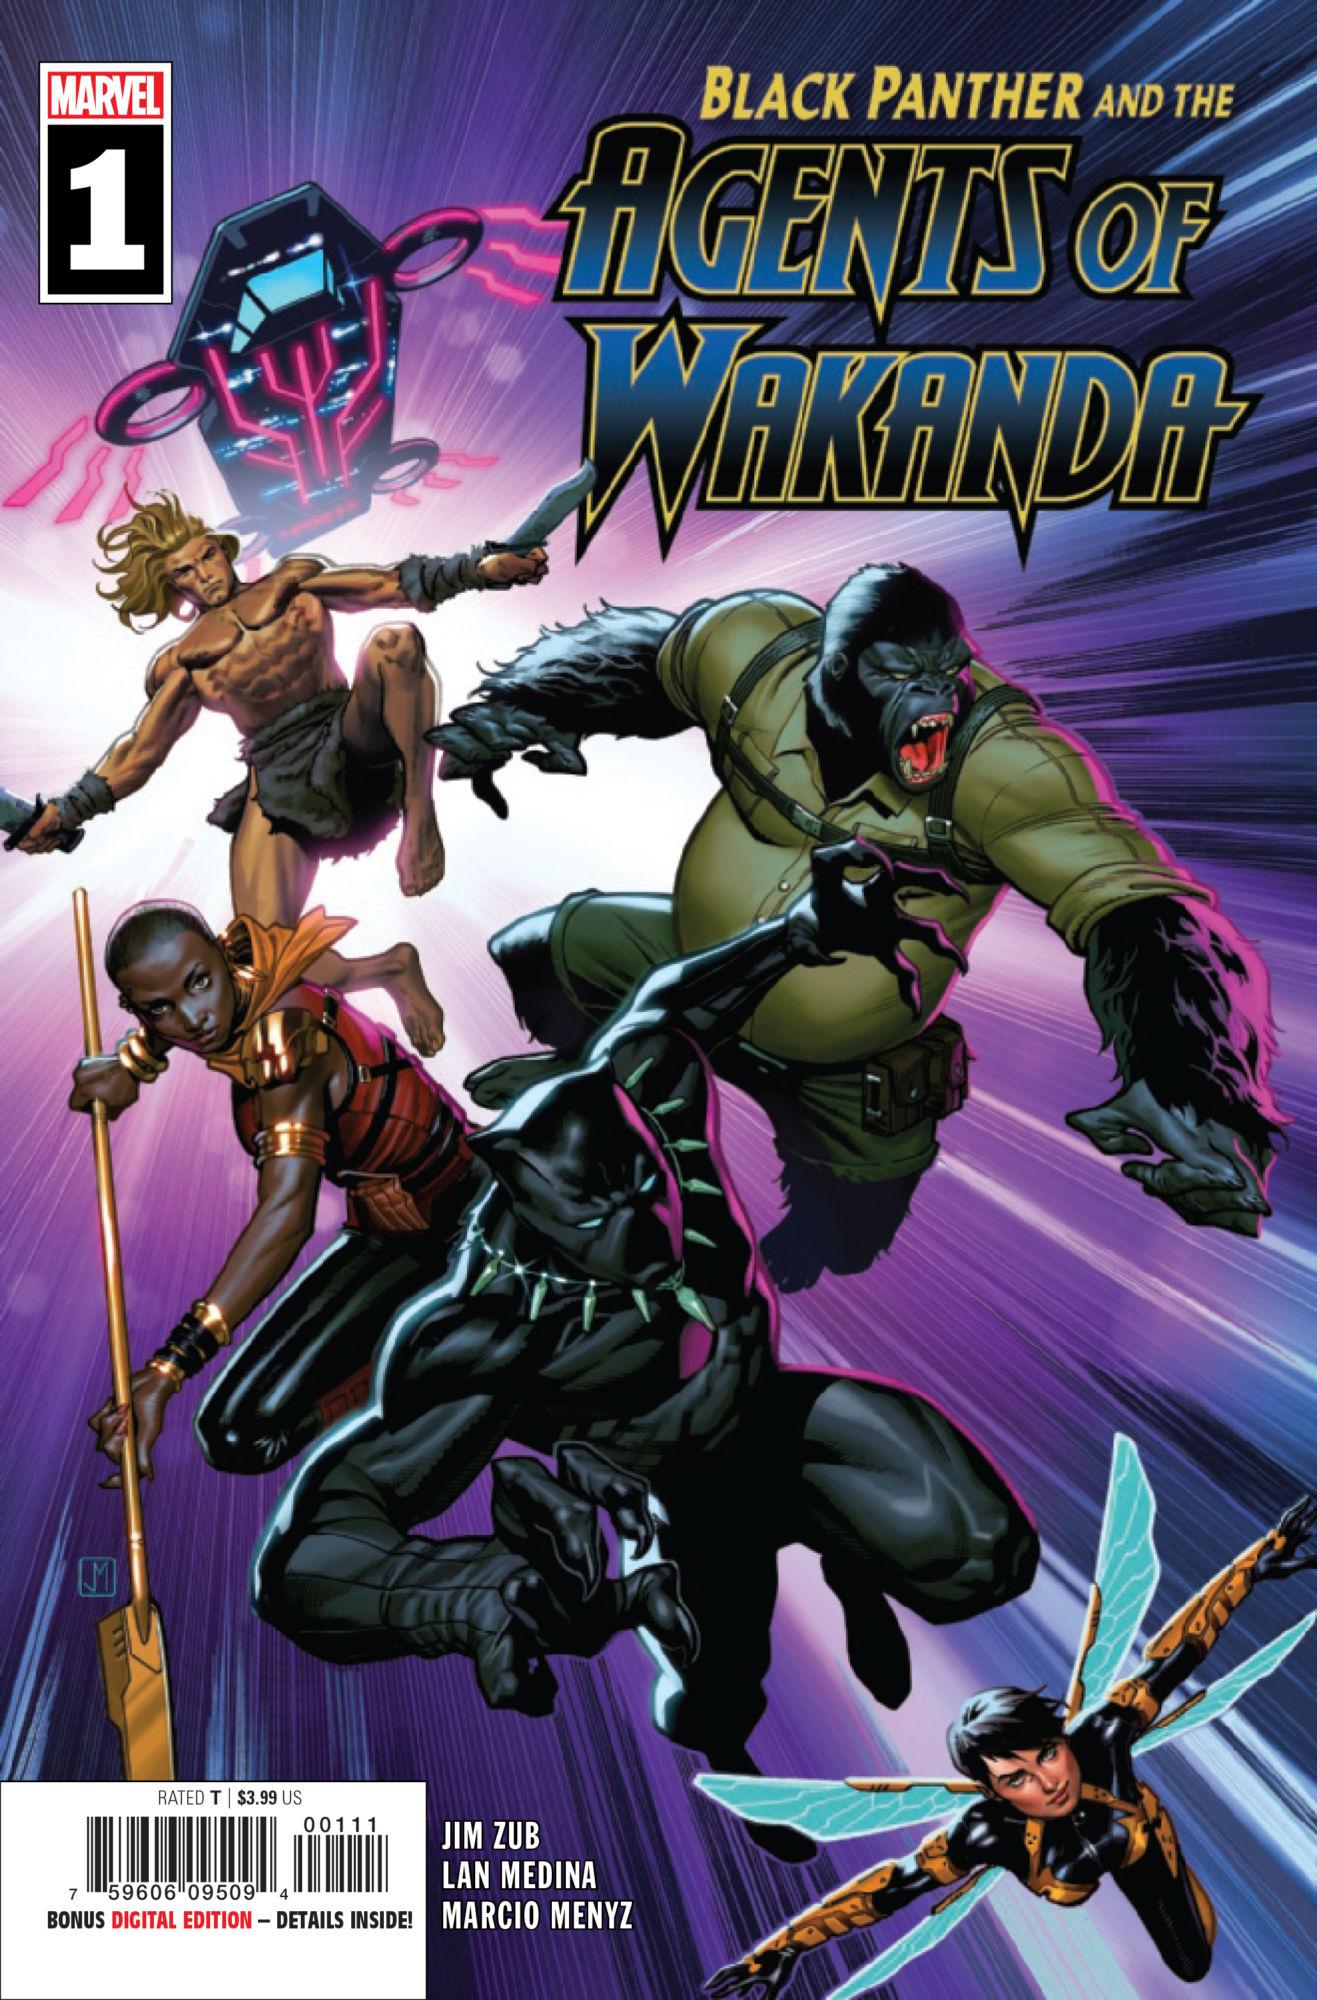 Small Town America Under Siege in Black Panther and the Agents of Wakanda #1 [Preview]